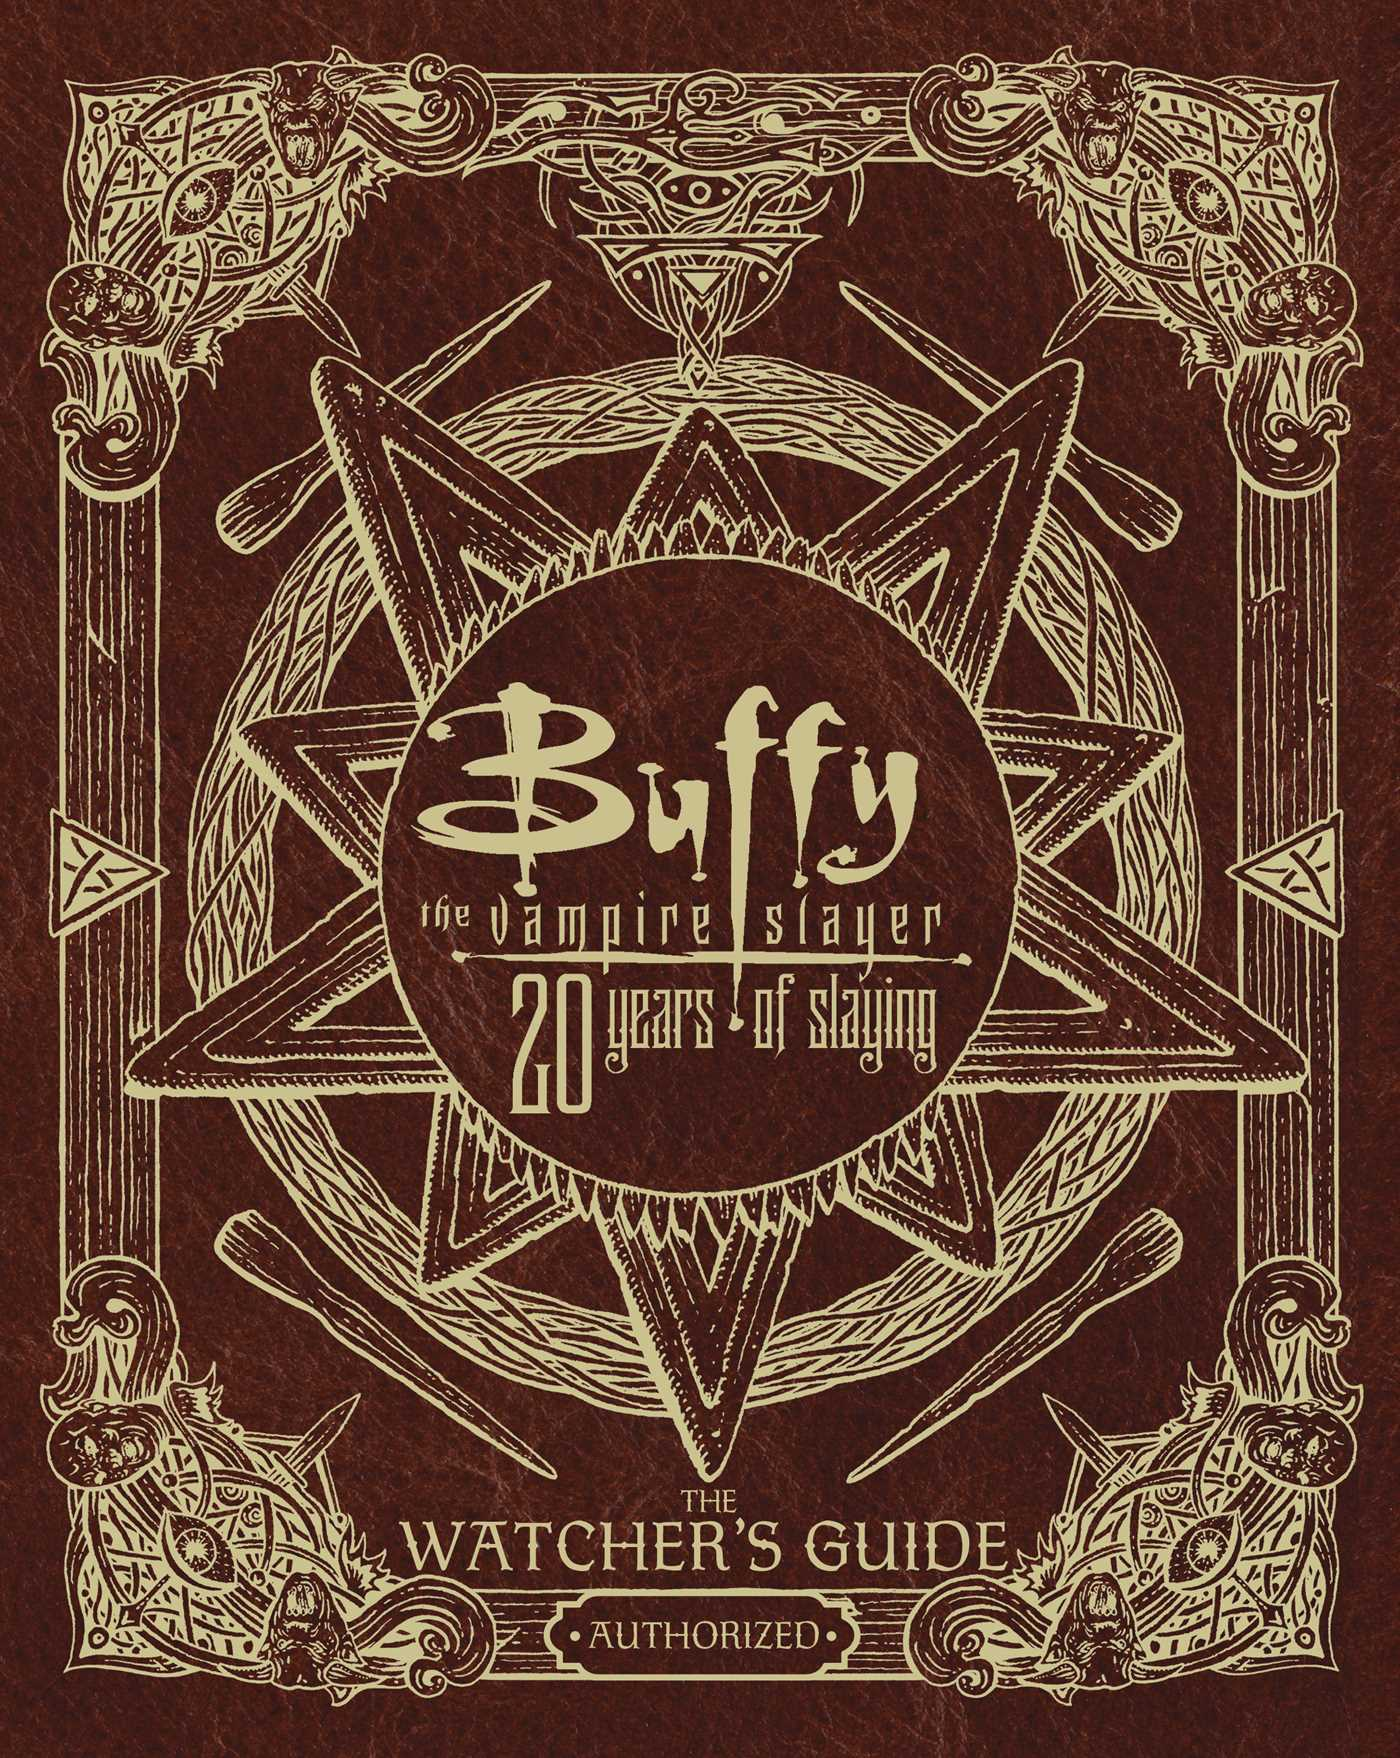 Buffy the Vampire Slayer 20 Years of Slaying : the watcher's guide authorized